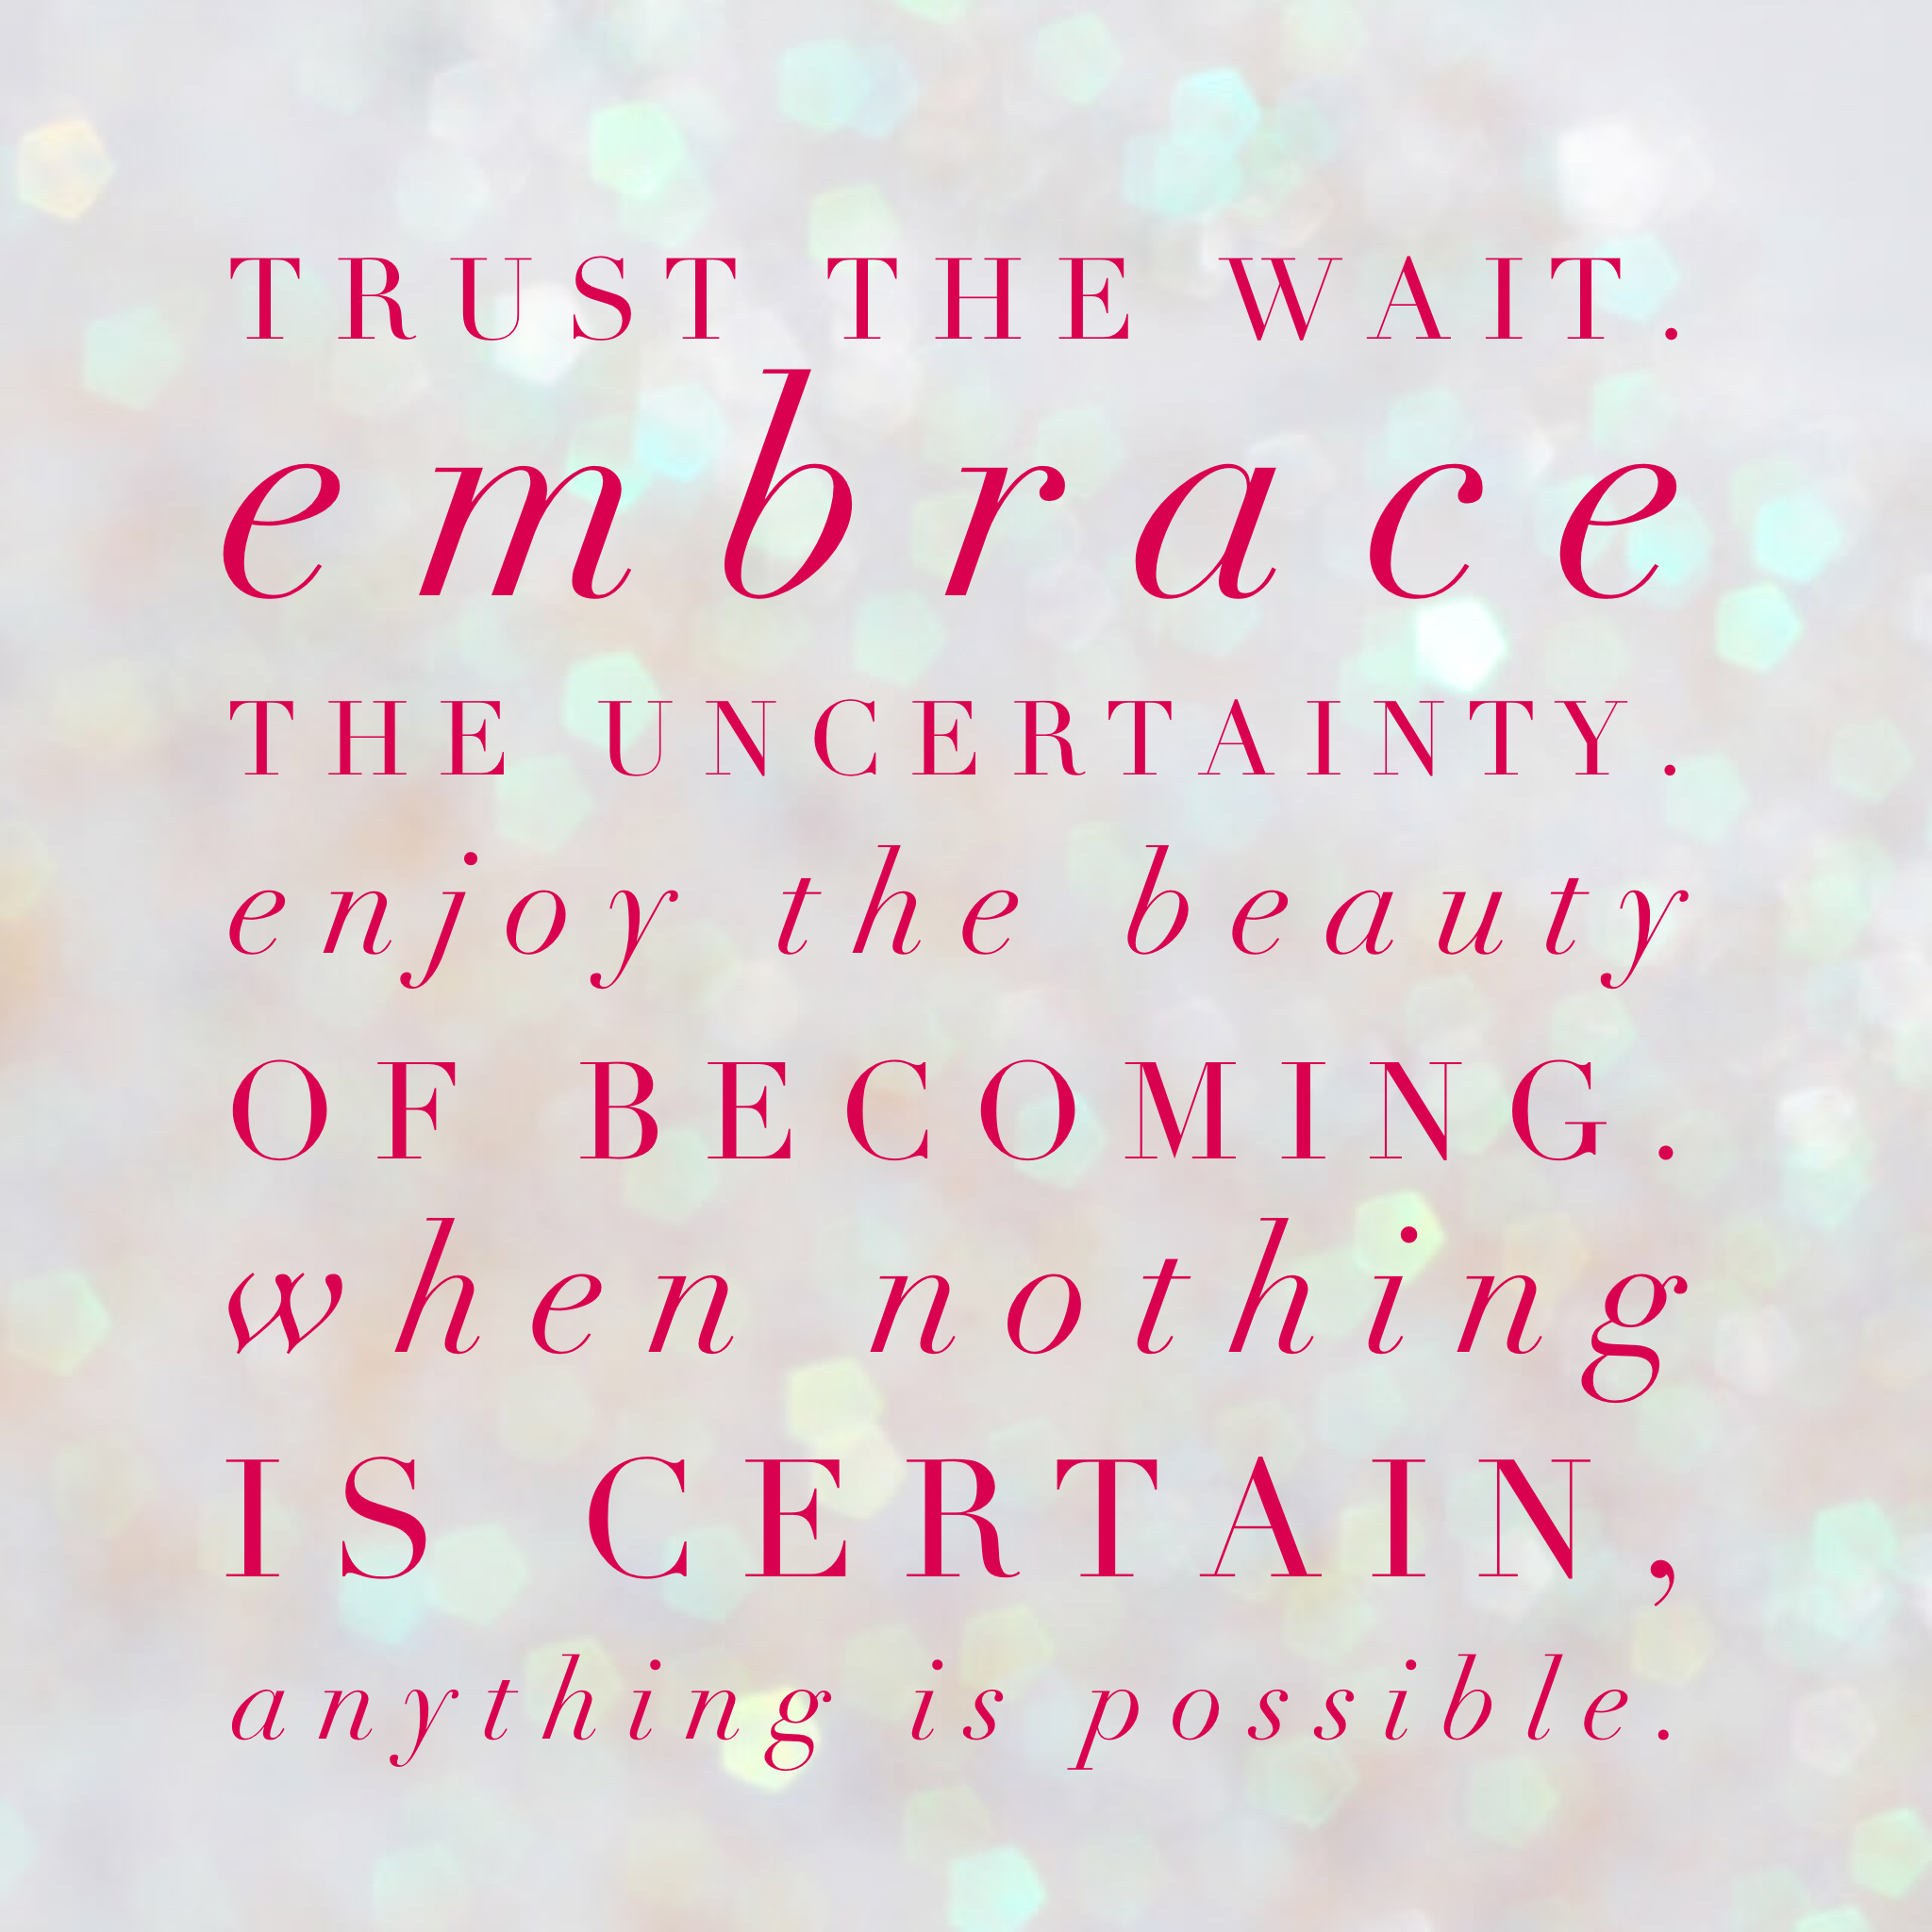 Quotes About Uncertainty In A Relationship: Trust The Wait, Embrace The Uncertainty Enjoy The Beauty